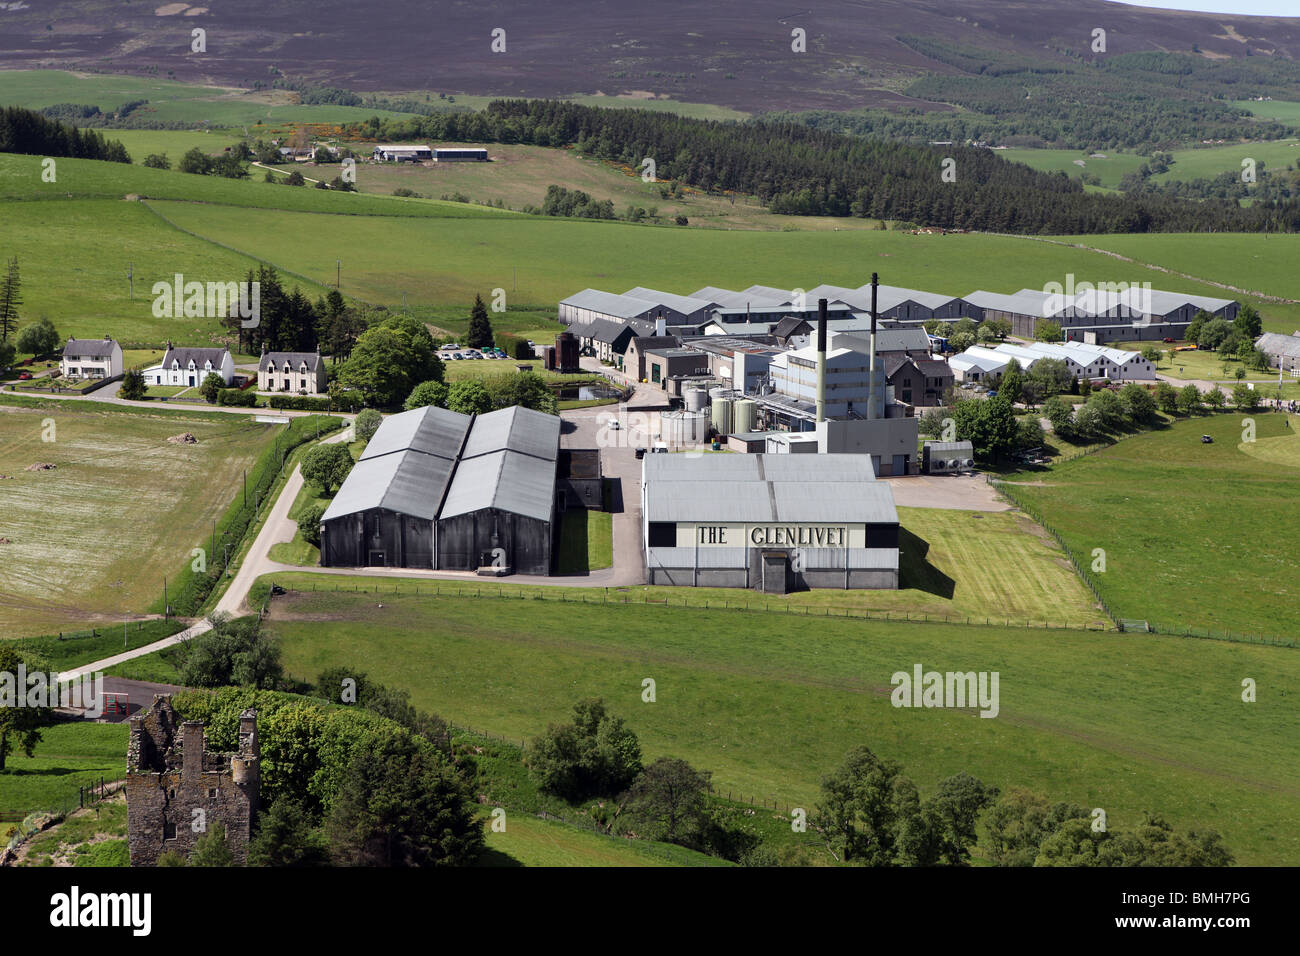 Aerial photo of the world famous Glenlivet scotch whisky distillery in the highlands of Scotland near Ballindalloch - Stock Image